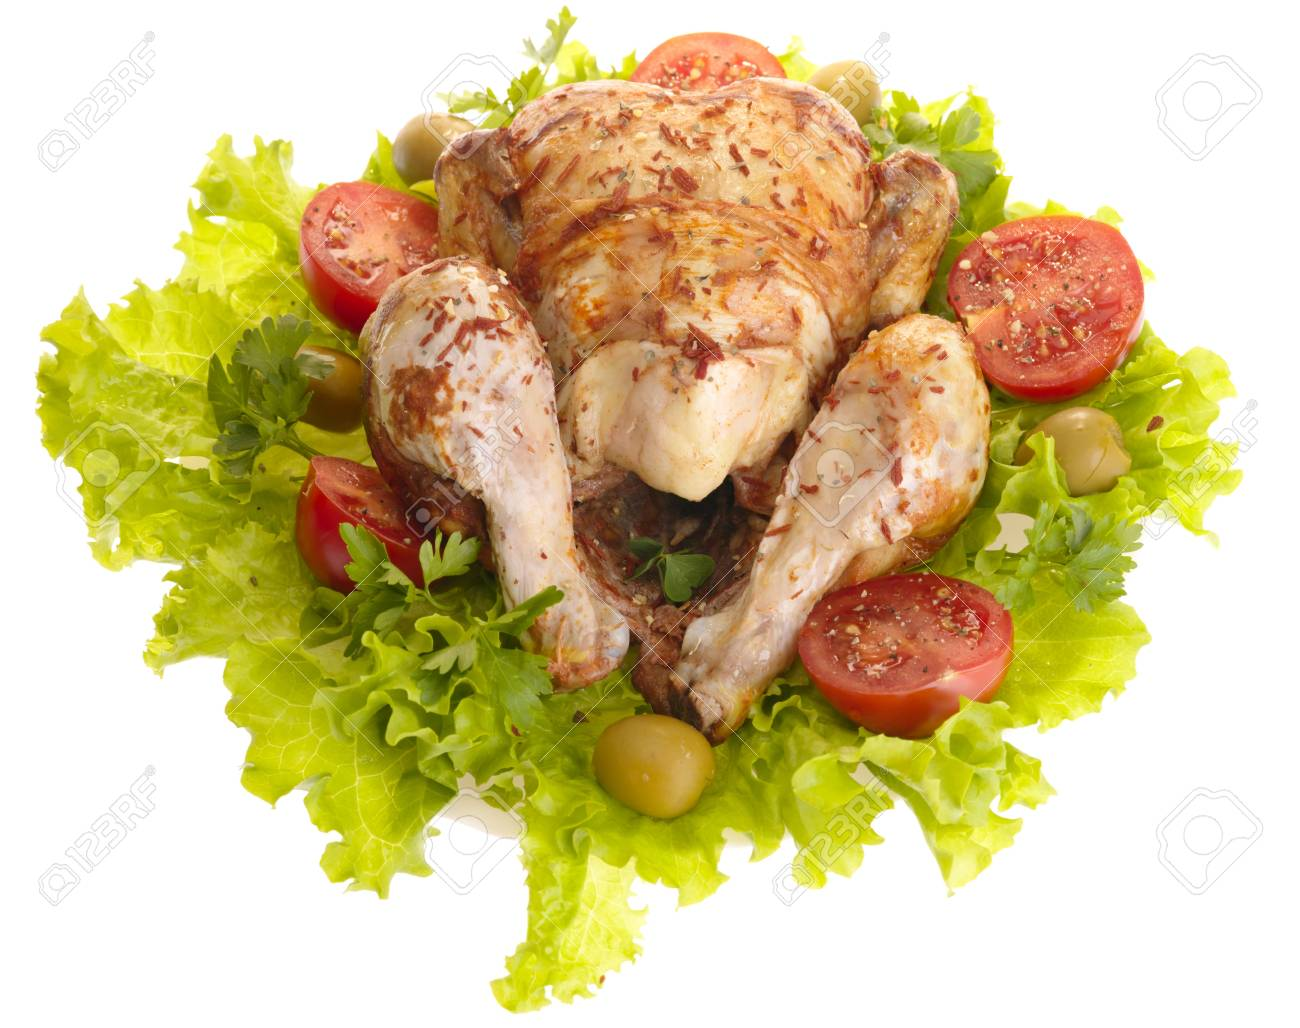 grilled chicken whole with vegetables on salad leafs Stock Photo - 4891310